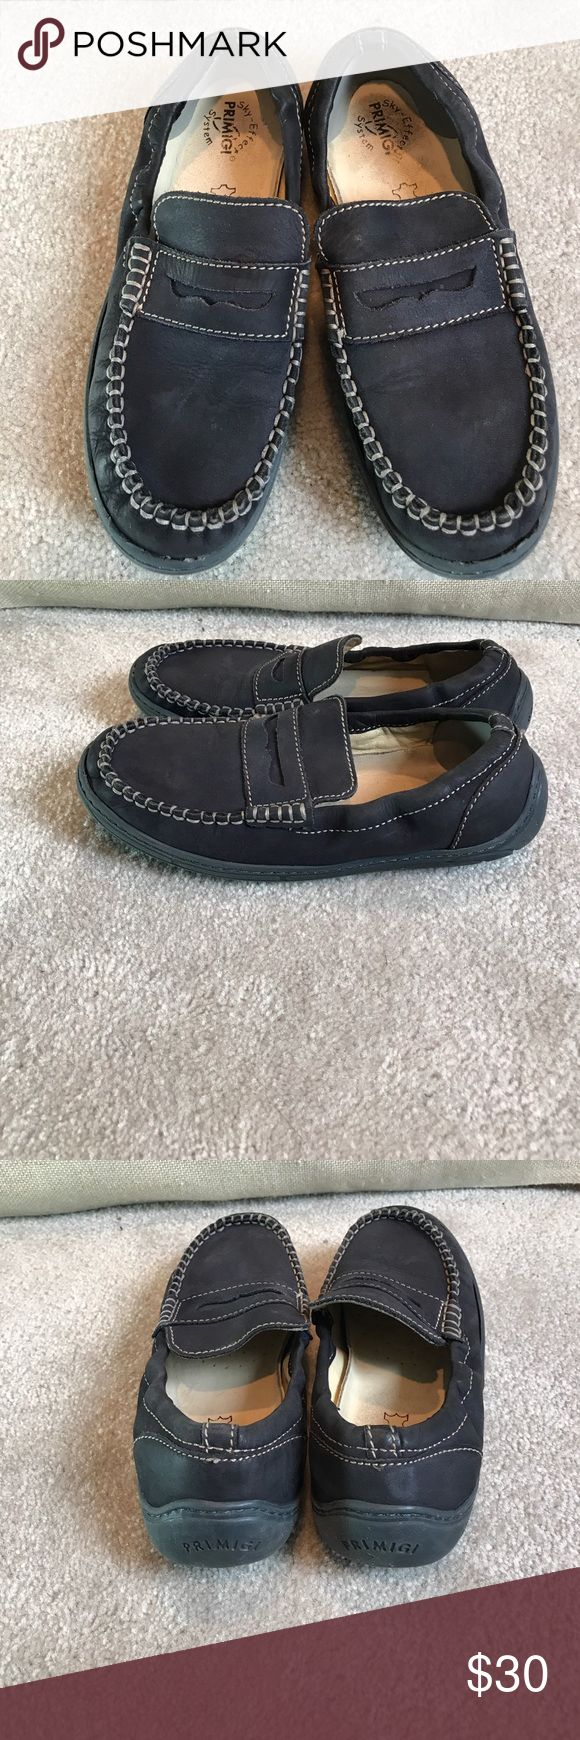 Primigi Sky Effect blue mocassins loafers 34 Great condition. Clean. A bit of insole discoloration at the heel area. We added soft heel guard ( can be removed) Primigi Shoes Moccasins